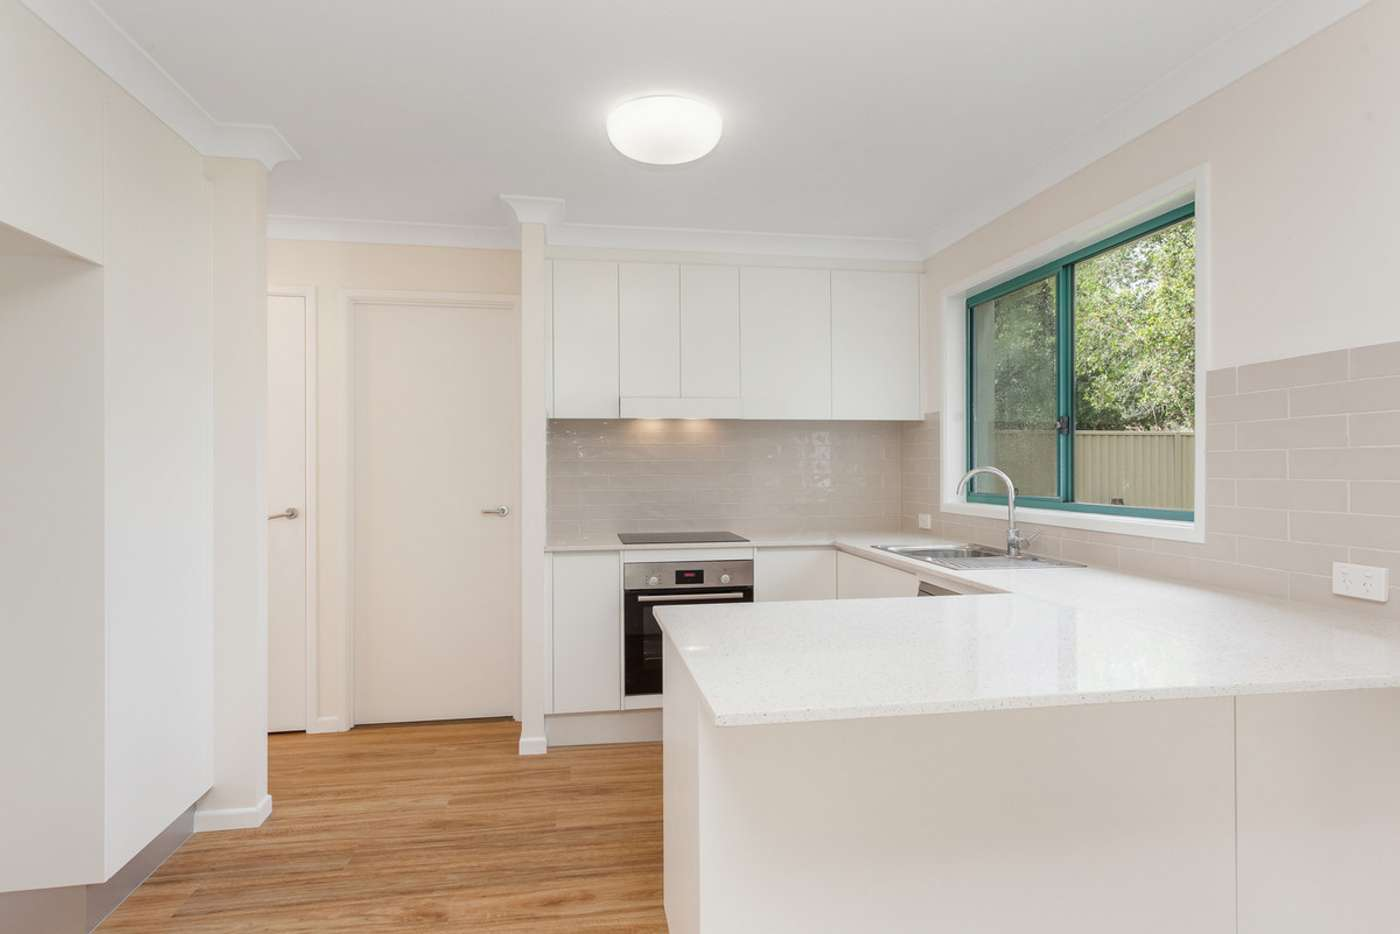 Fifth view of Homely house listing, 6 Seville Place, Burleigh Waters QLD 4220